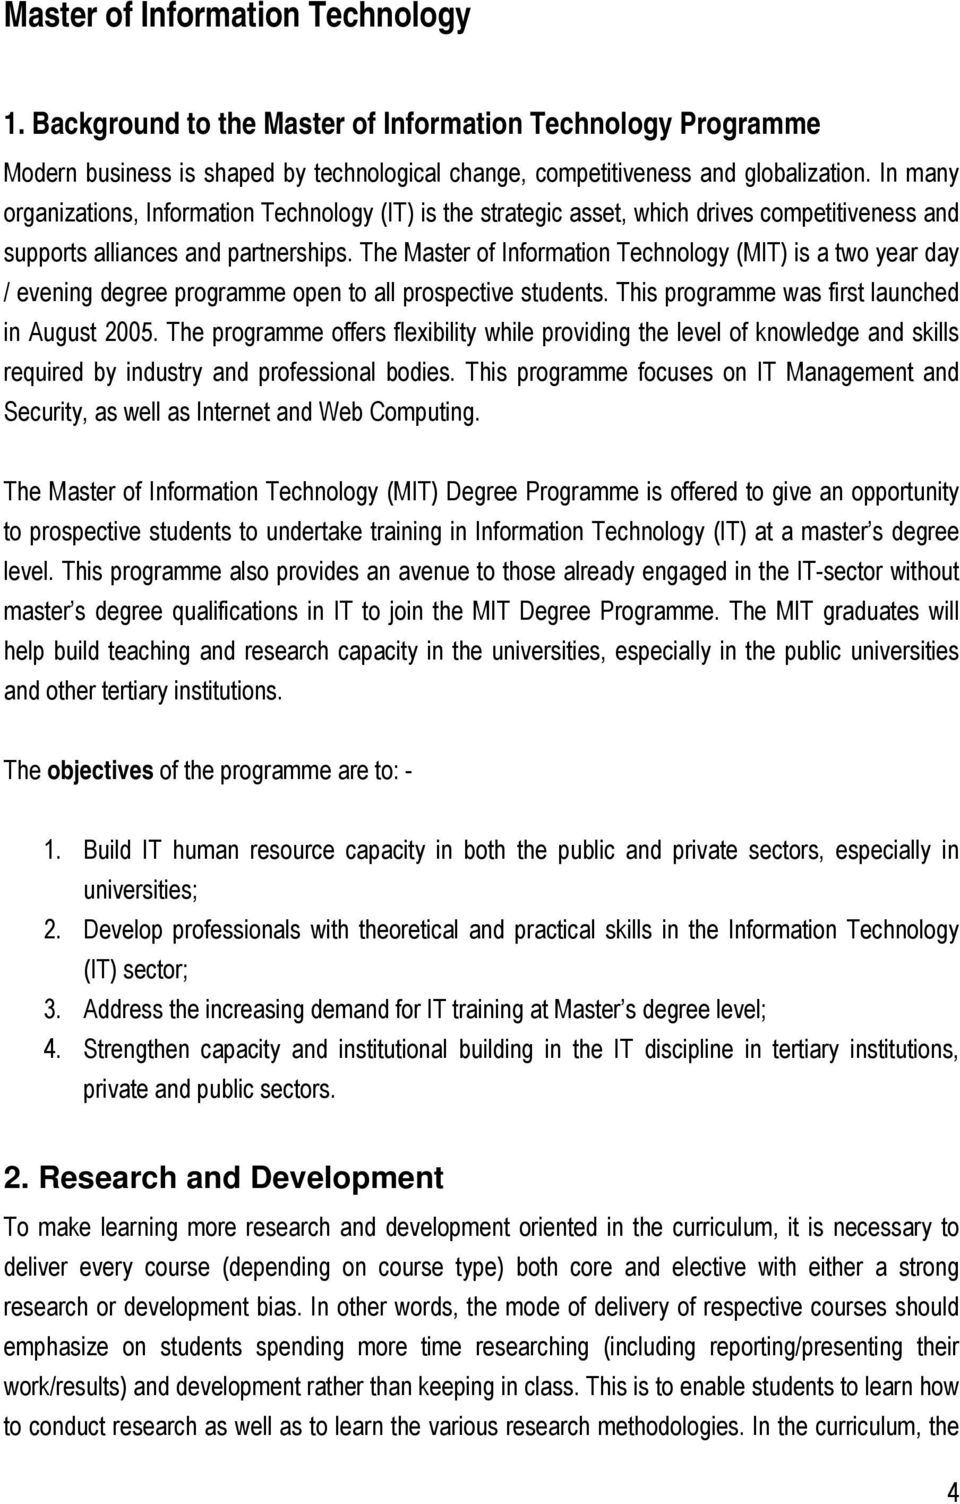 The Master of Information Technology (MIT) is a two year day / evening degree programme open to all prospective students. This programme was first launched in August 2005.